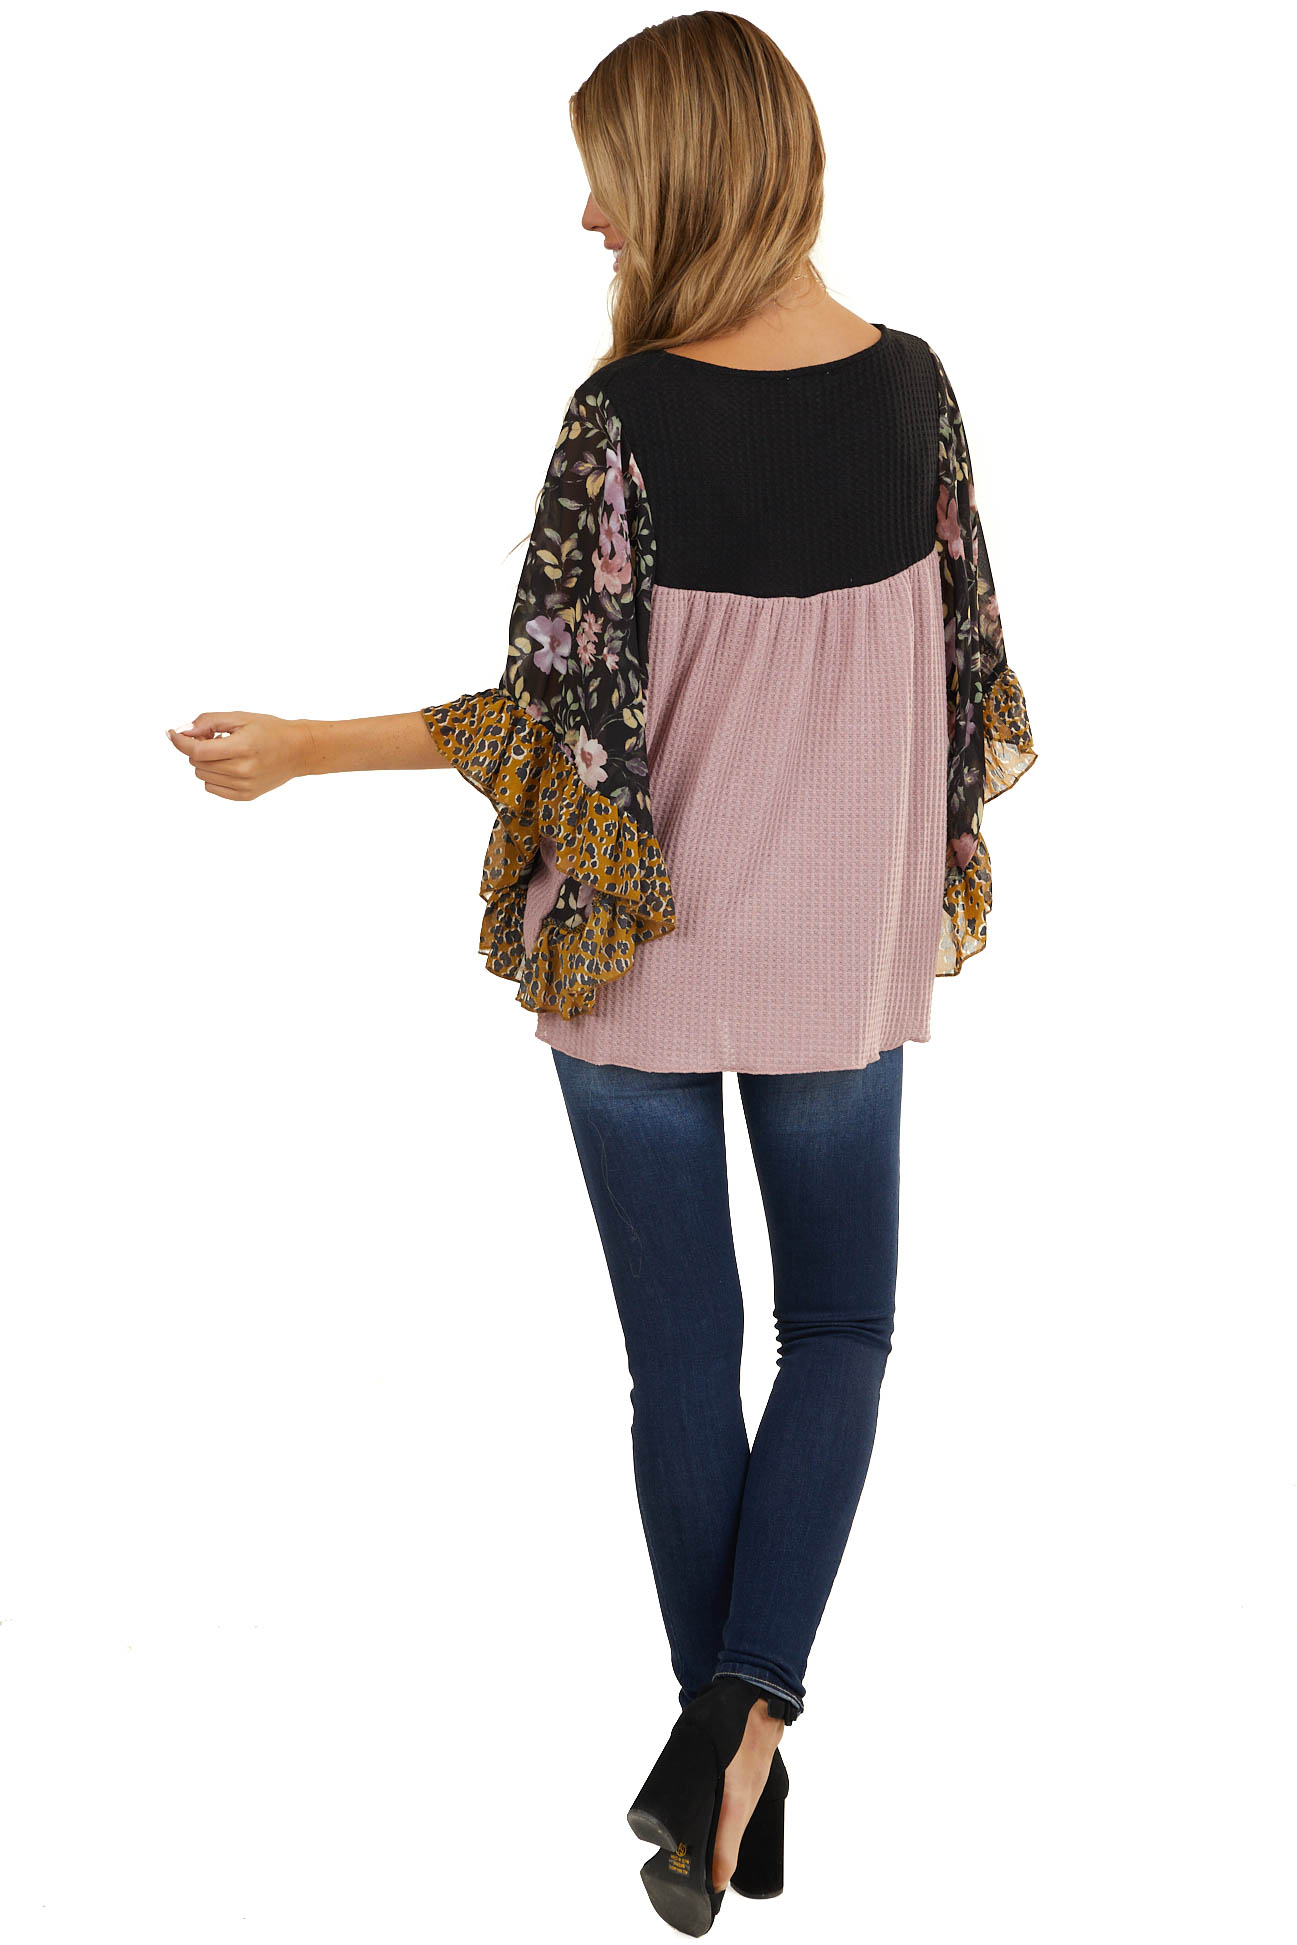 Dusty Blush Waffle Knit with Contrast Floral Batwing Sleeves